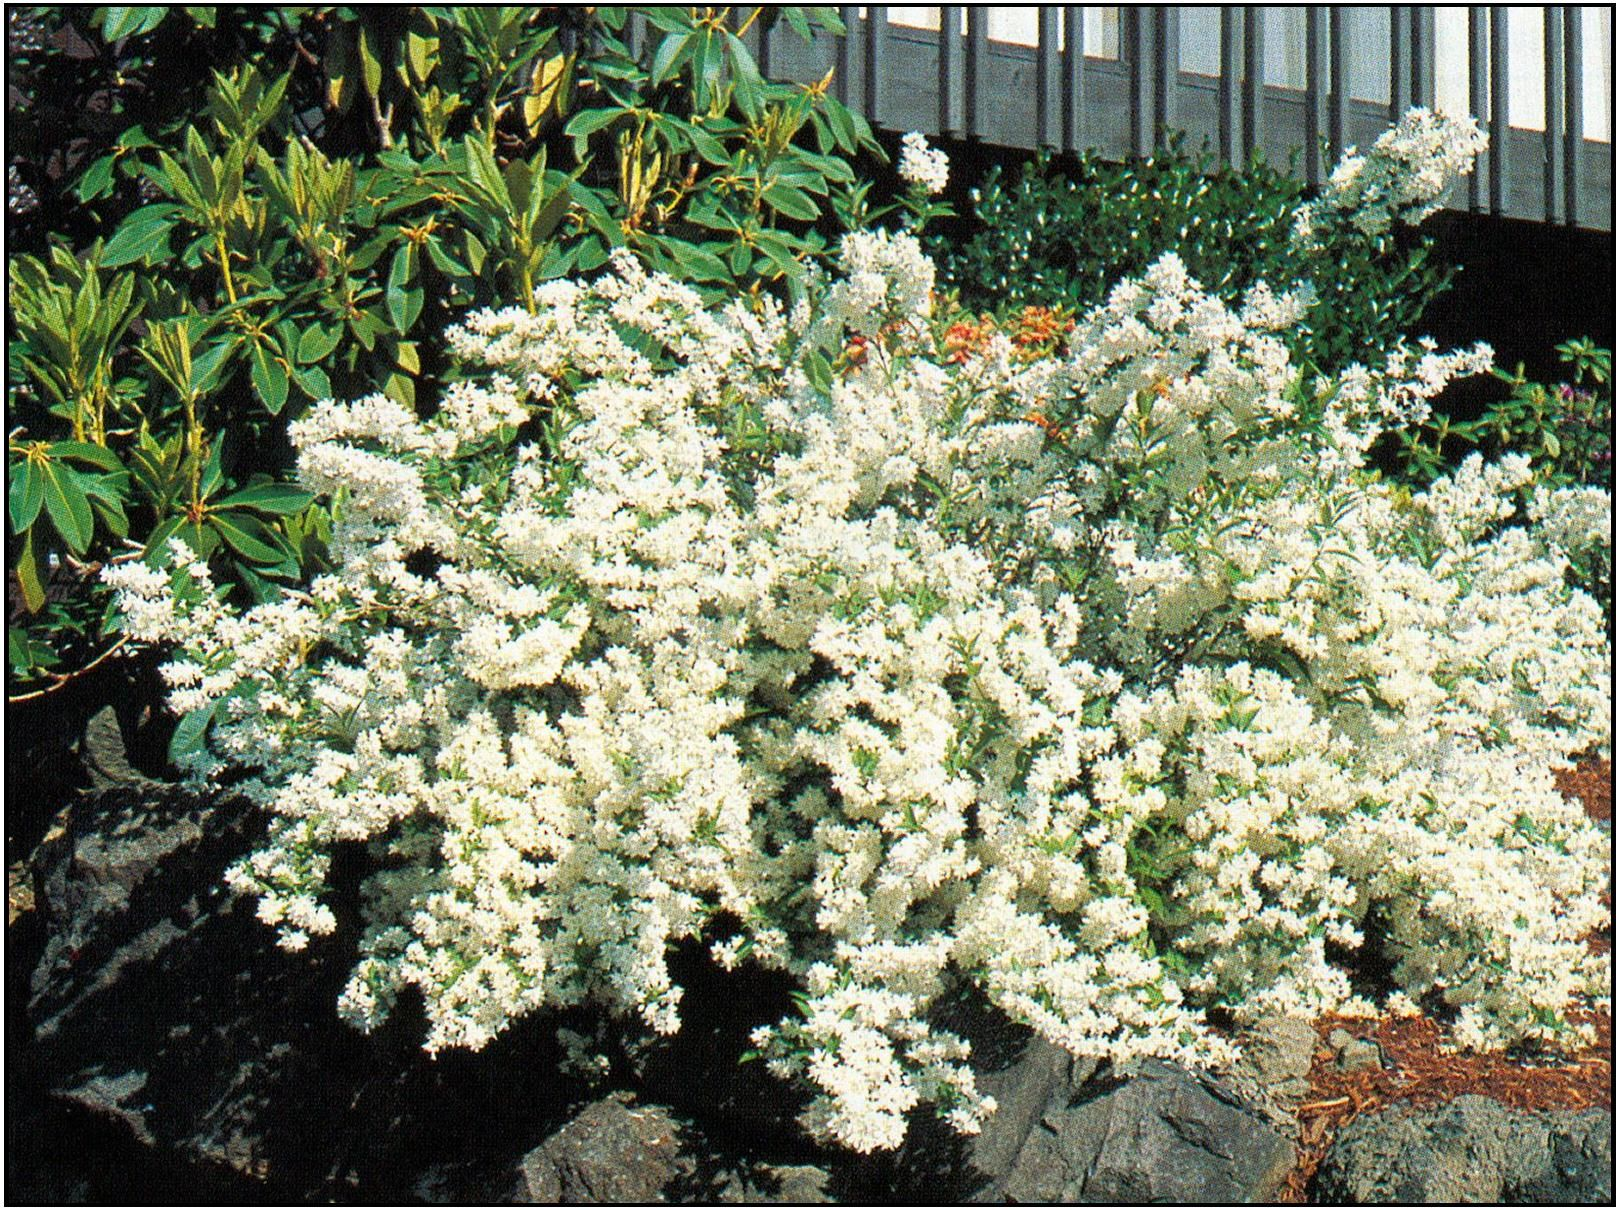 Shrubs with purple flowers at end of branch - Double White Deutzia High Wide Small Shrub With A Dense Upright Habit And A Showy Display Of Pure White Flowers In Spring On Gracefully Arching Branches